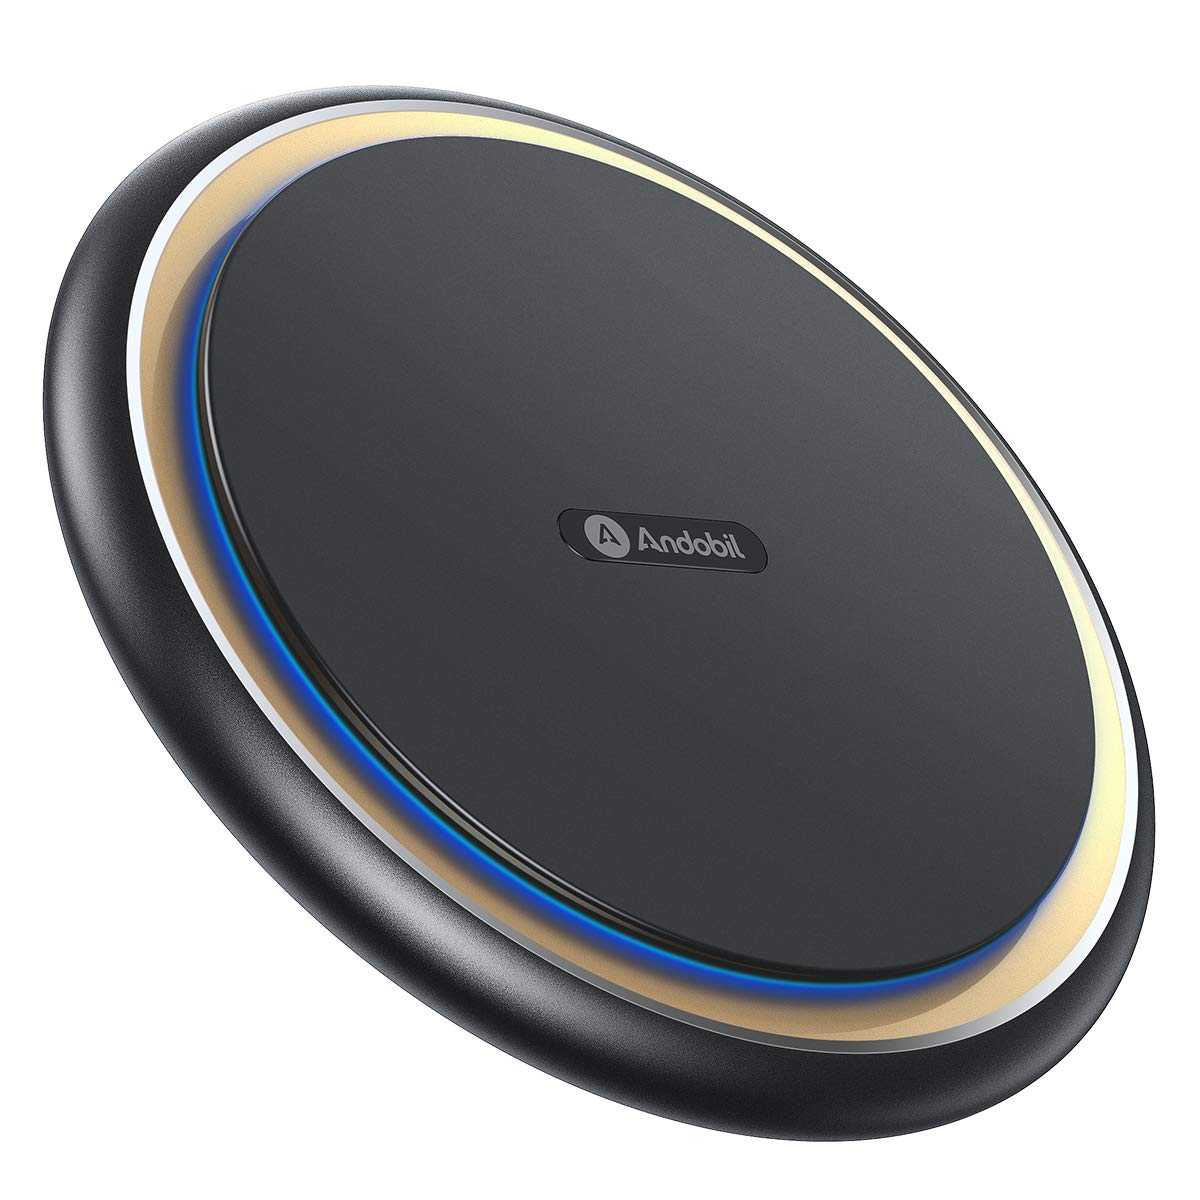 Andobil Boost 15W Fast Wireless Charger, USB-C Qi Certified Alloy Cooling Charging Pad Station 10W 7.5W Compatible iPhone X/Xs Max/Xs/Xr/8/8+, Samsung Galaxy S10/S10+/S10e/S9/S9+/S8/S7, LG V30/V40/G7